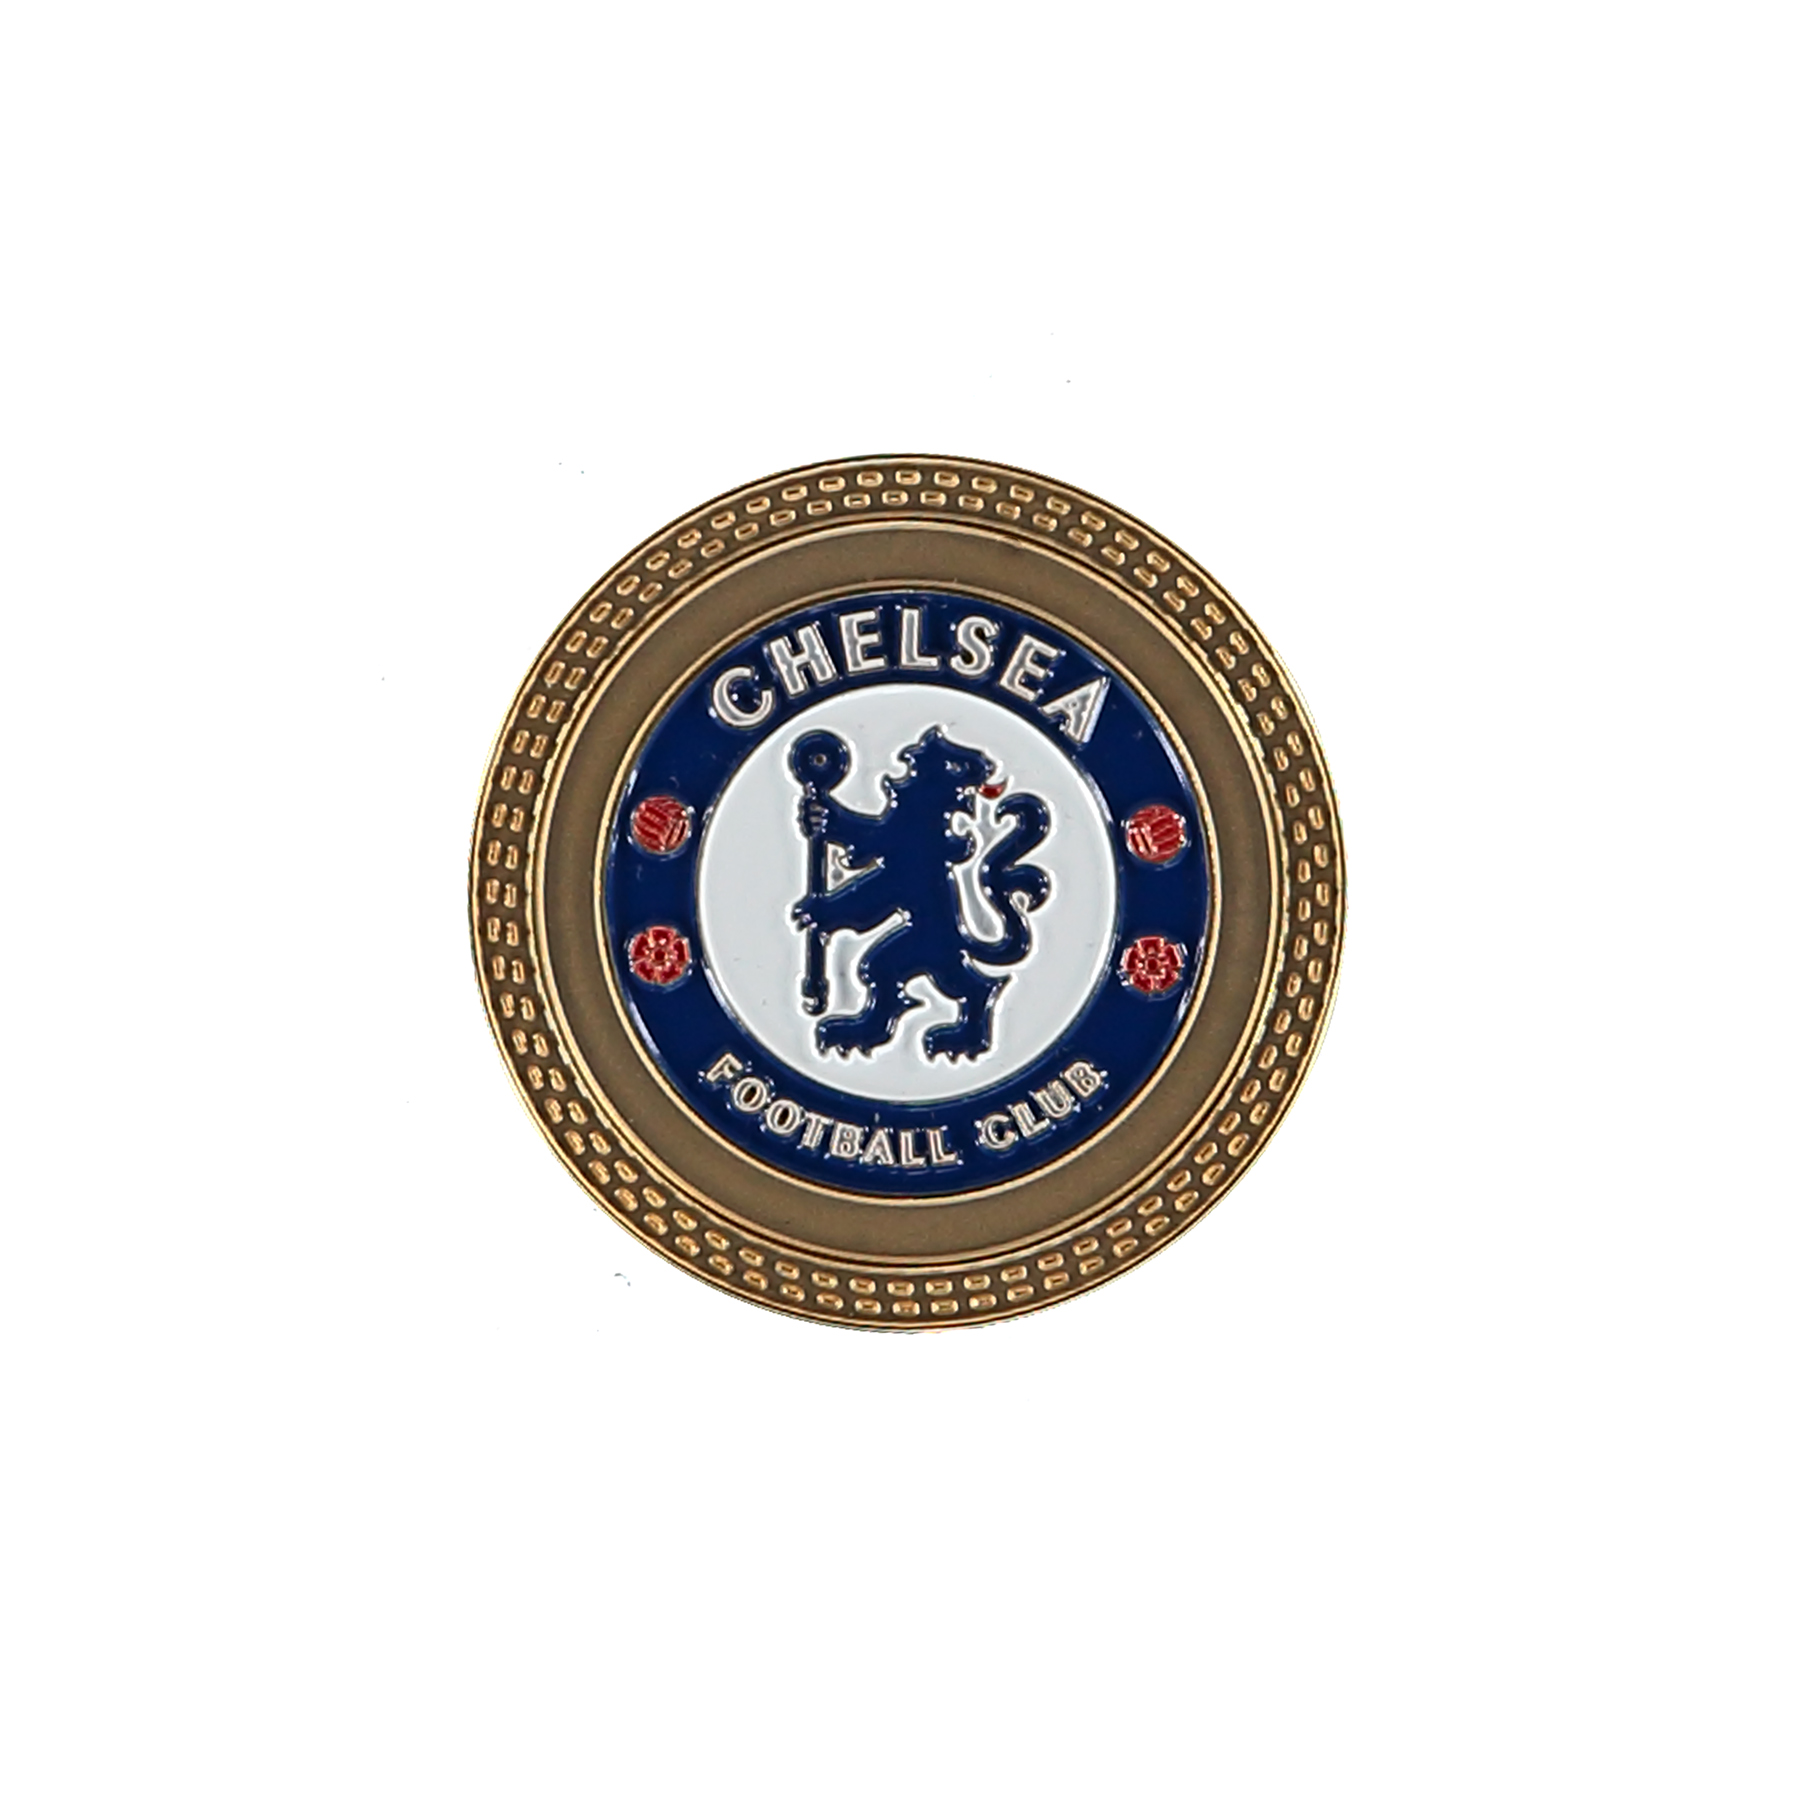 Chelsea 2014-15 Commemorative Medal Coin